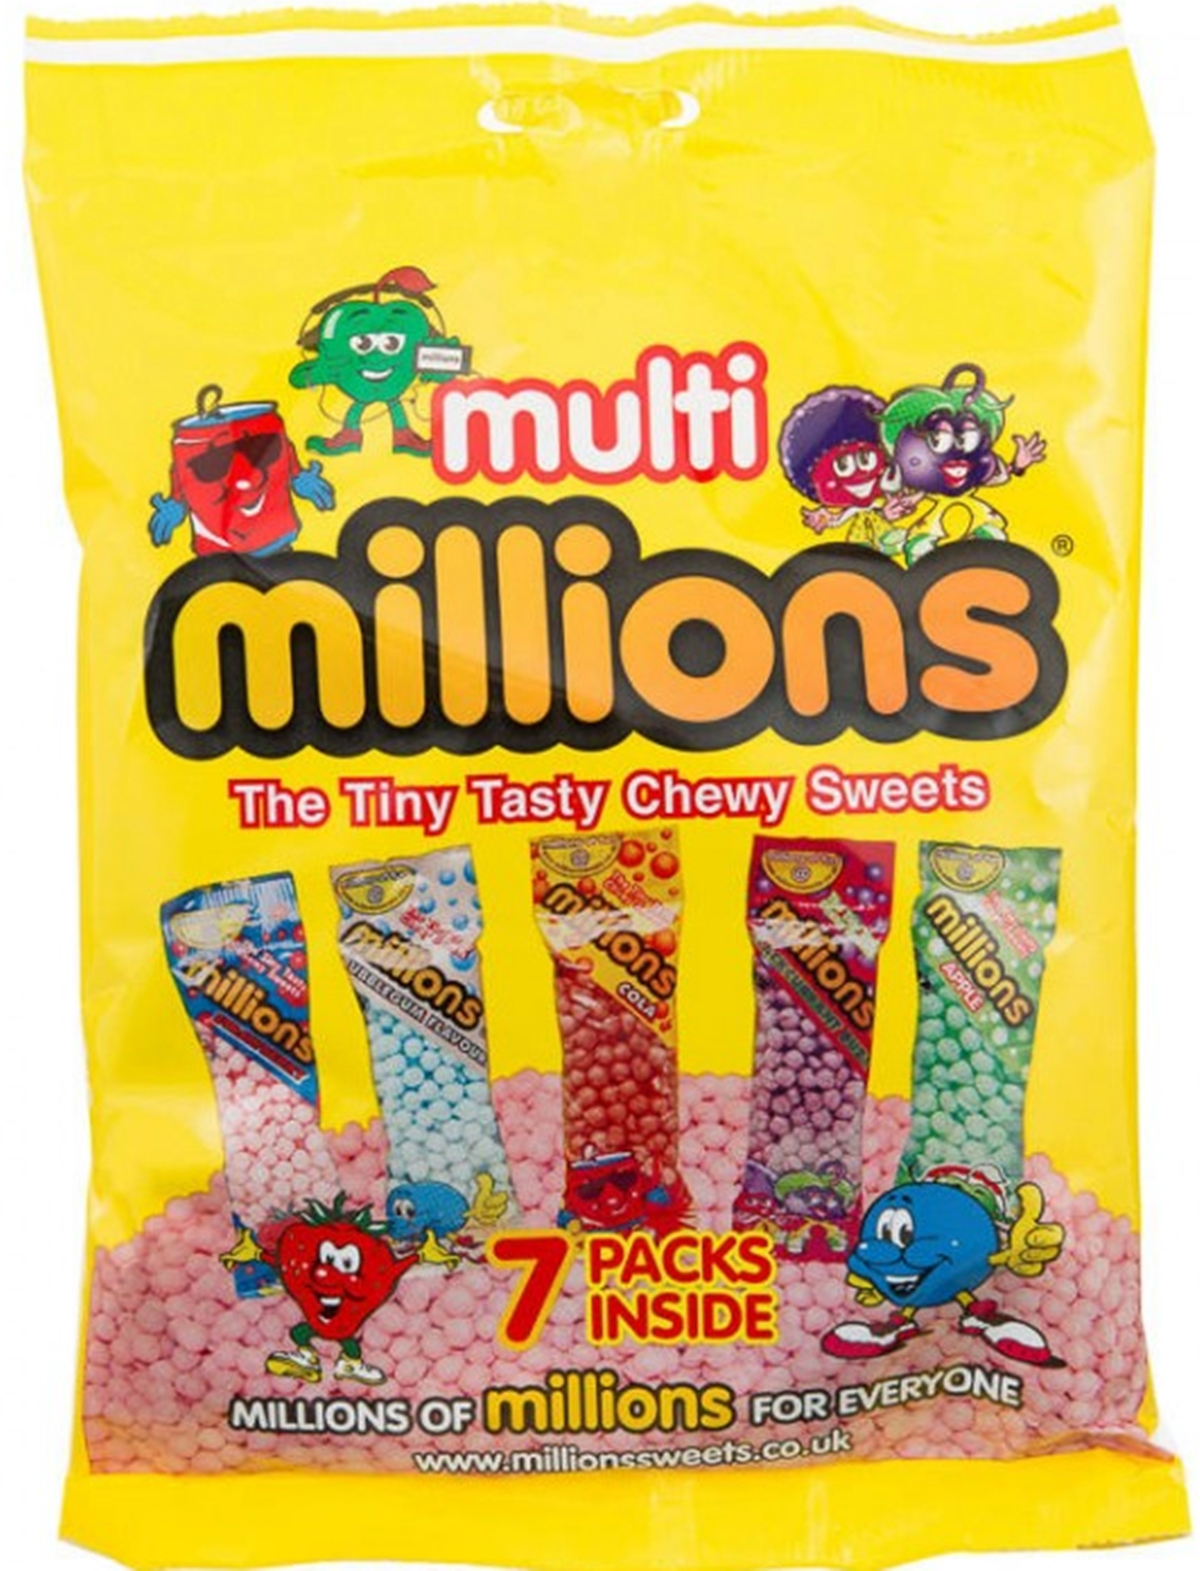 6 12 12 Childhood Sweets You've Probably Forgotten About